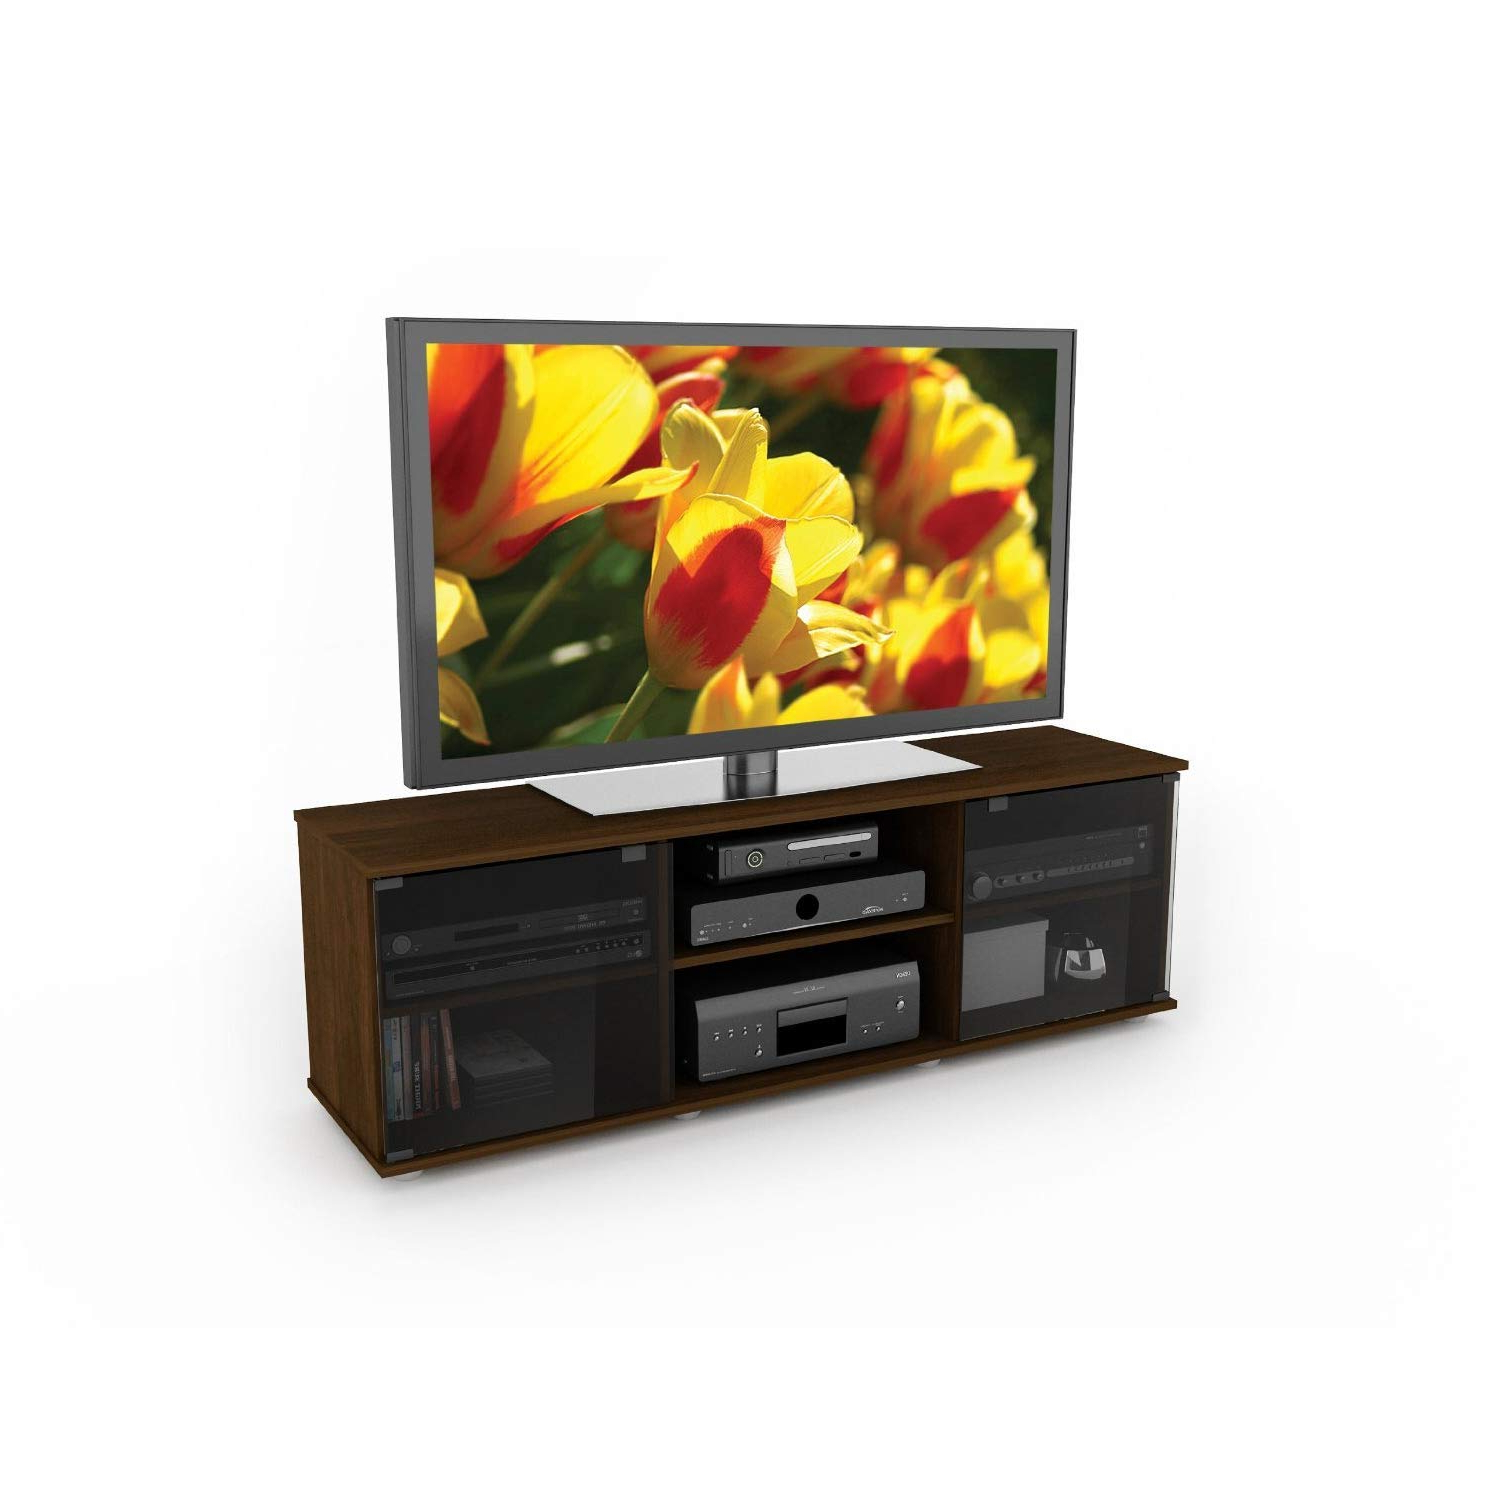 84 Inch Tv Stands With Regard To Well Known Cheap 84 Inch Tv Stand, Find 84 Inch Tv Stand Deals On Line At (View 16 of 20)